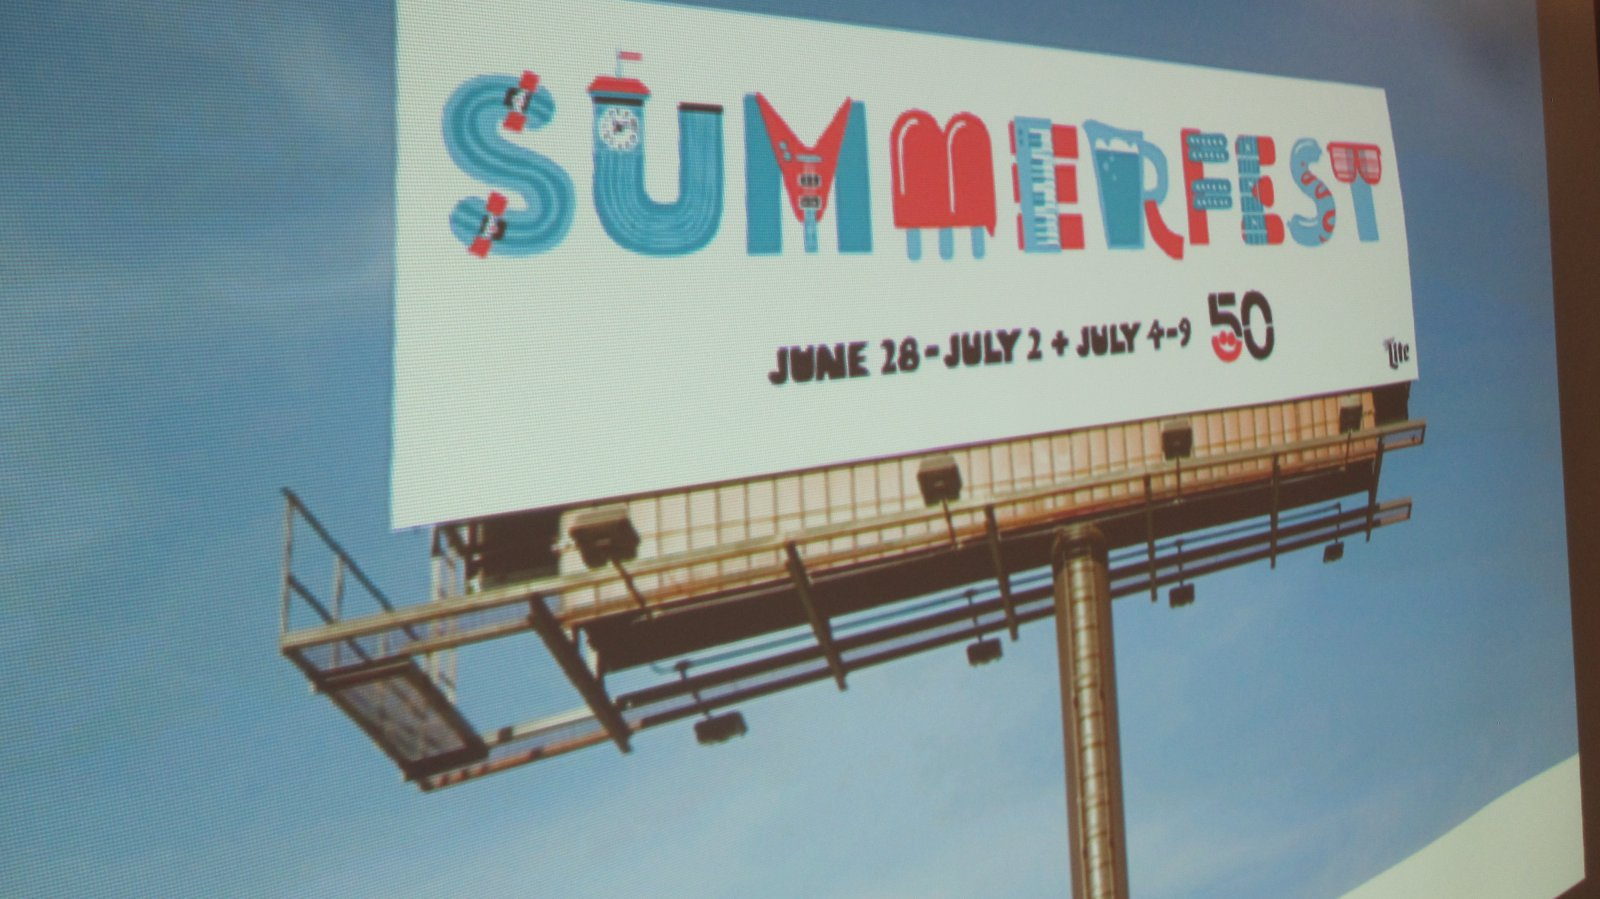 Summerfest 50th Anniversary logo design. Photo by Michael Horne.